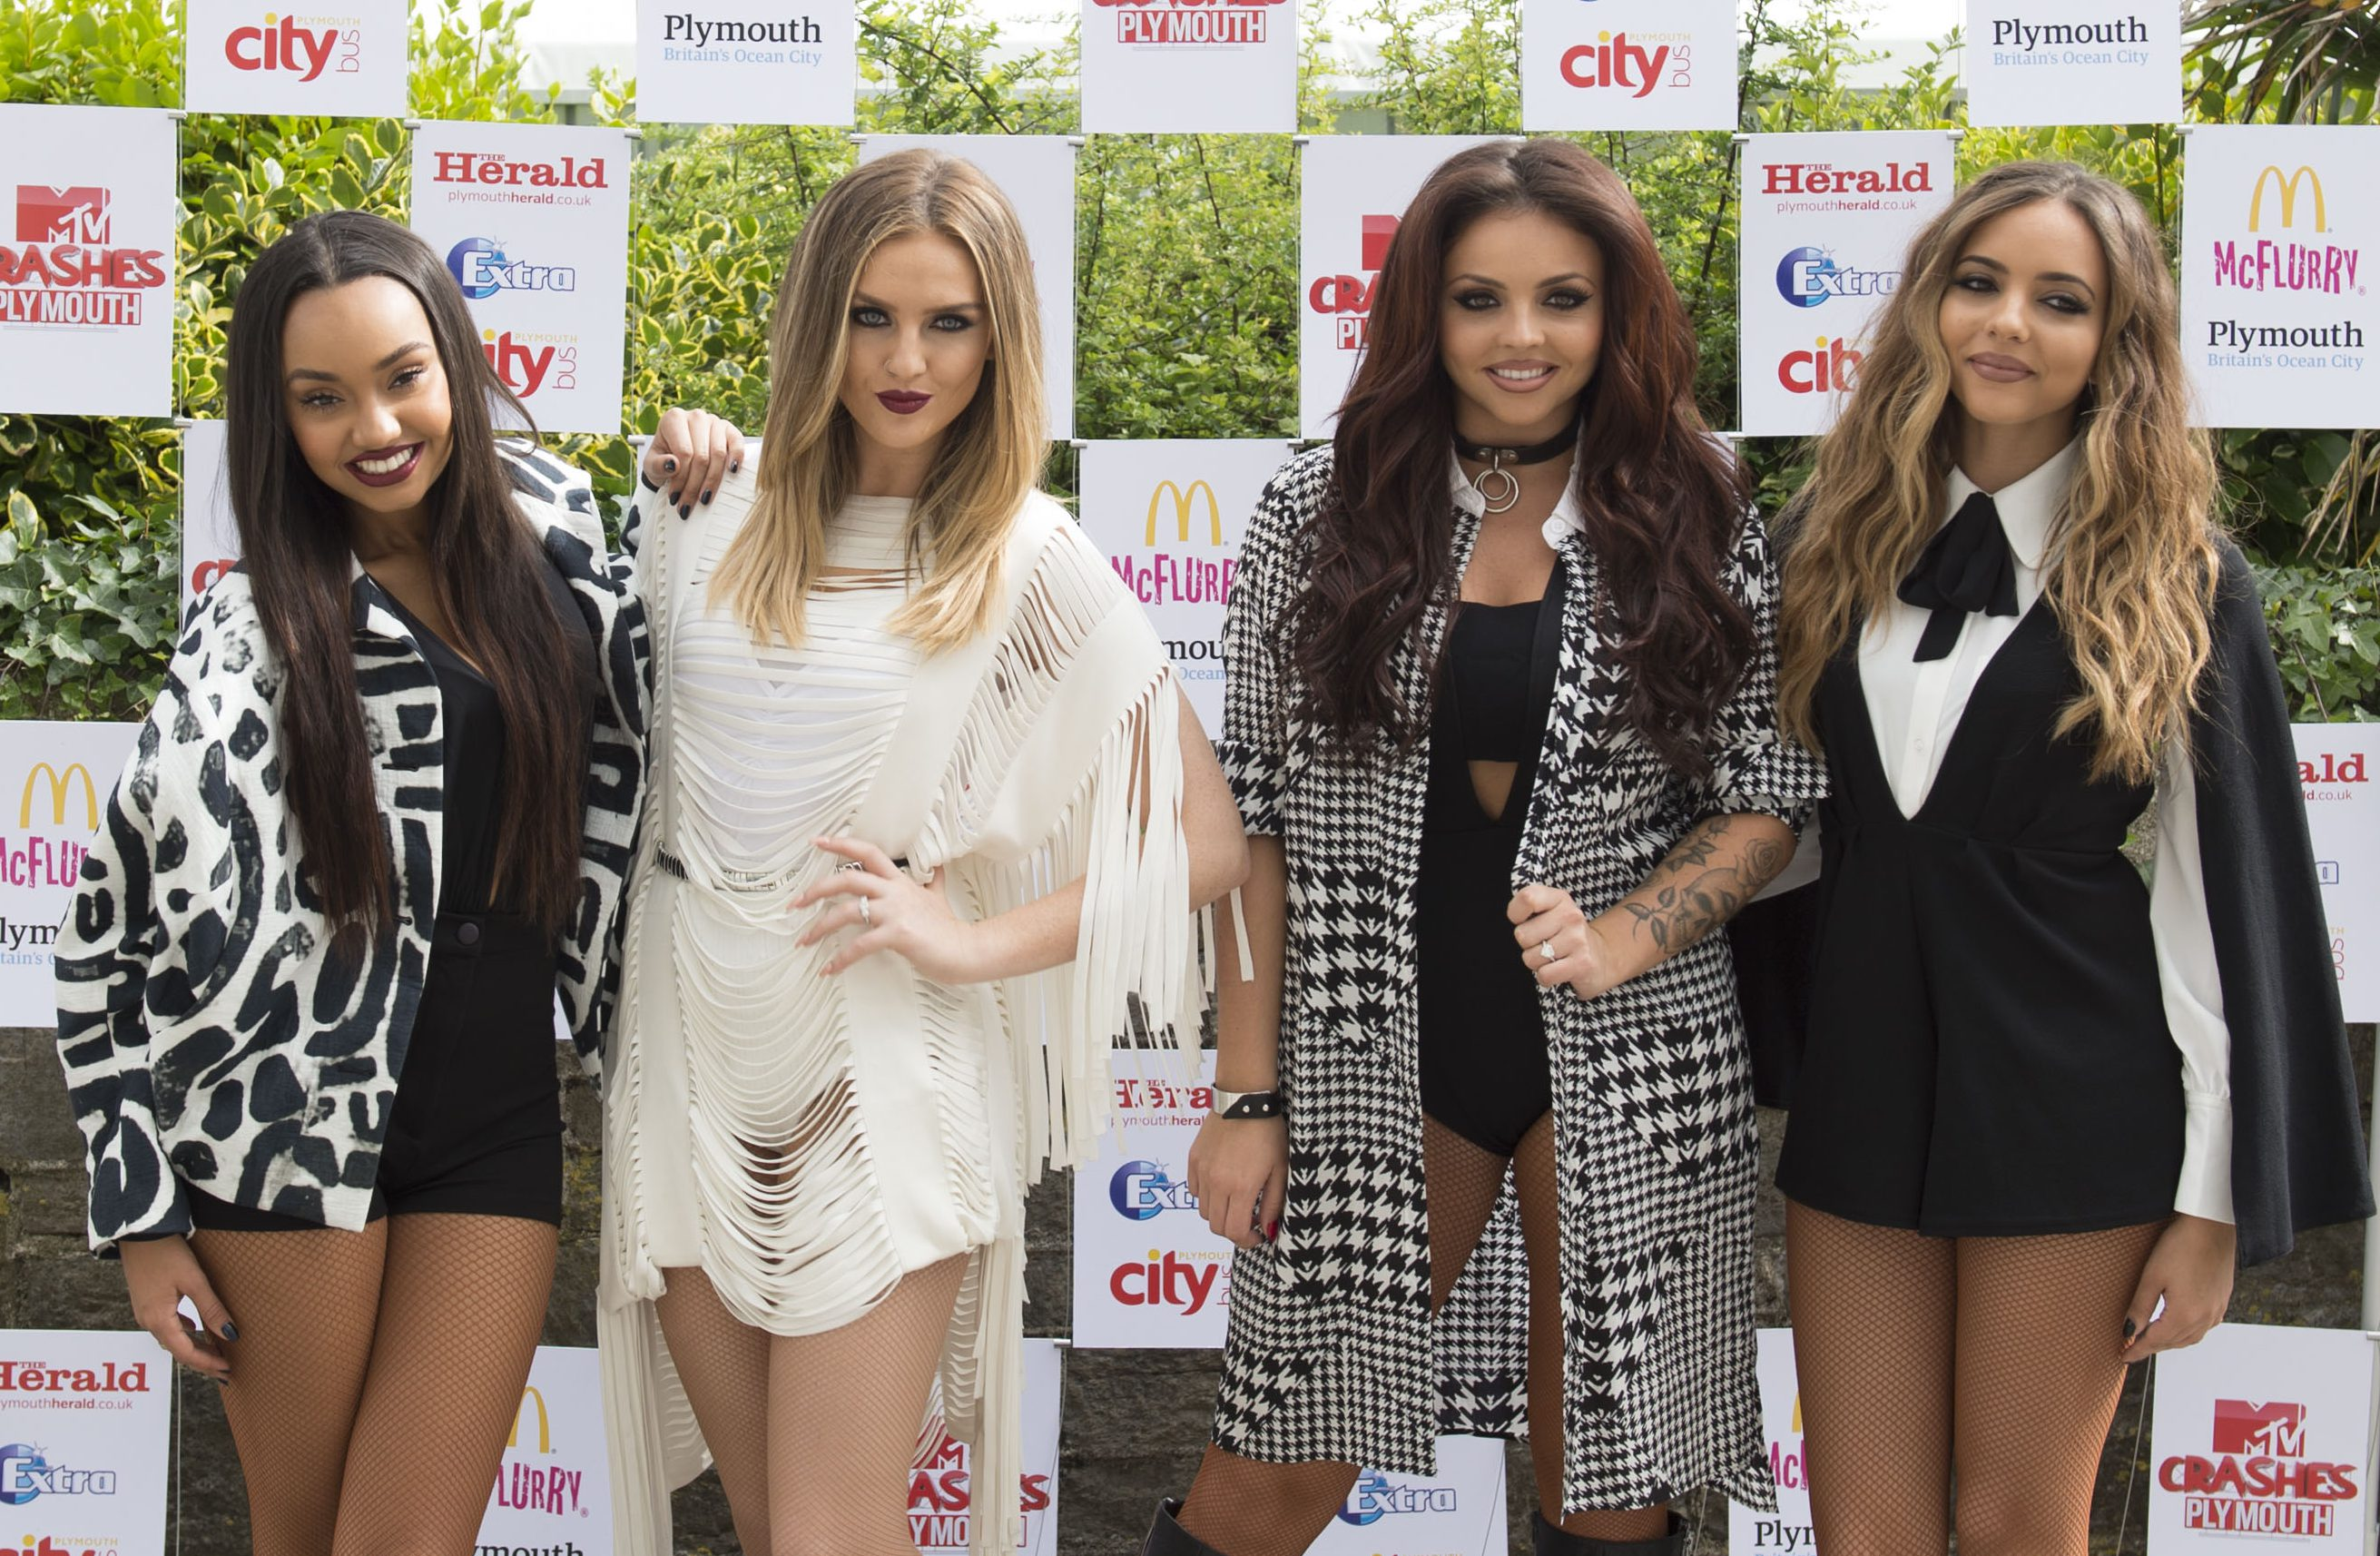 PLYMOUTH, ENGLAND - JULY 22: Leigh-Anne Pinnock, Perrie Edwards, Jesy Nelson and Jade Thirlwall of Little Mix pose for the media ahead of the MTV Crashes Plymouth concert at Plymouth Hoe on July 22, 2014 in Plymouth, England. (Photo by Matthew Horwood/Getty Images for MTV UK)